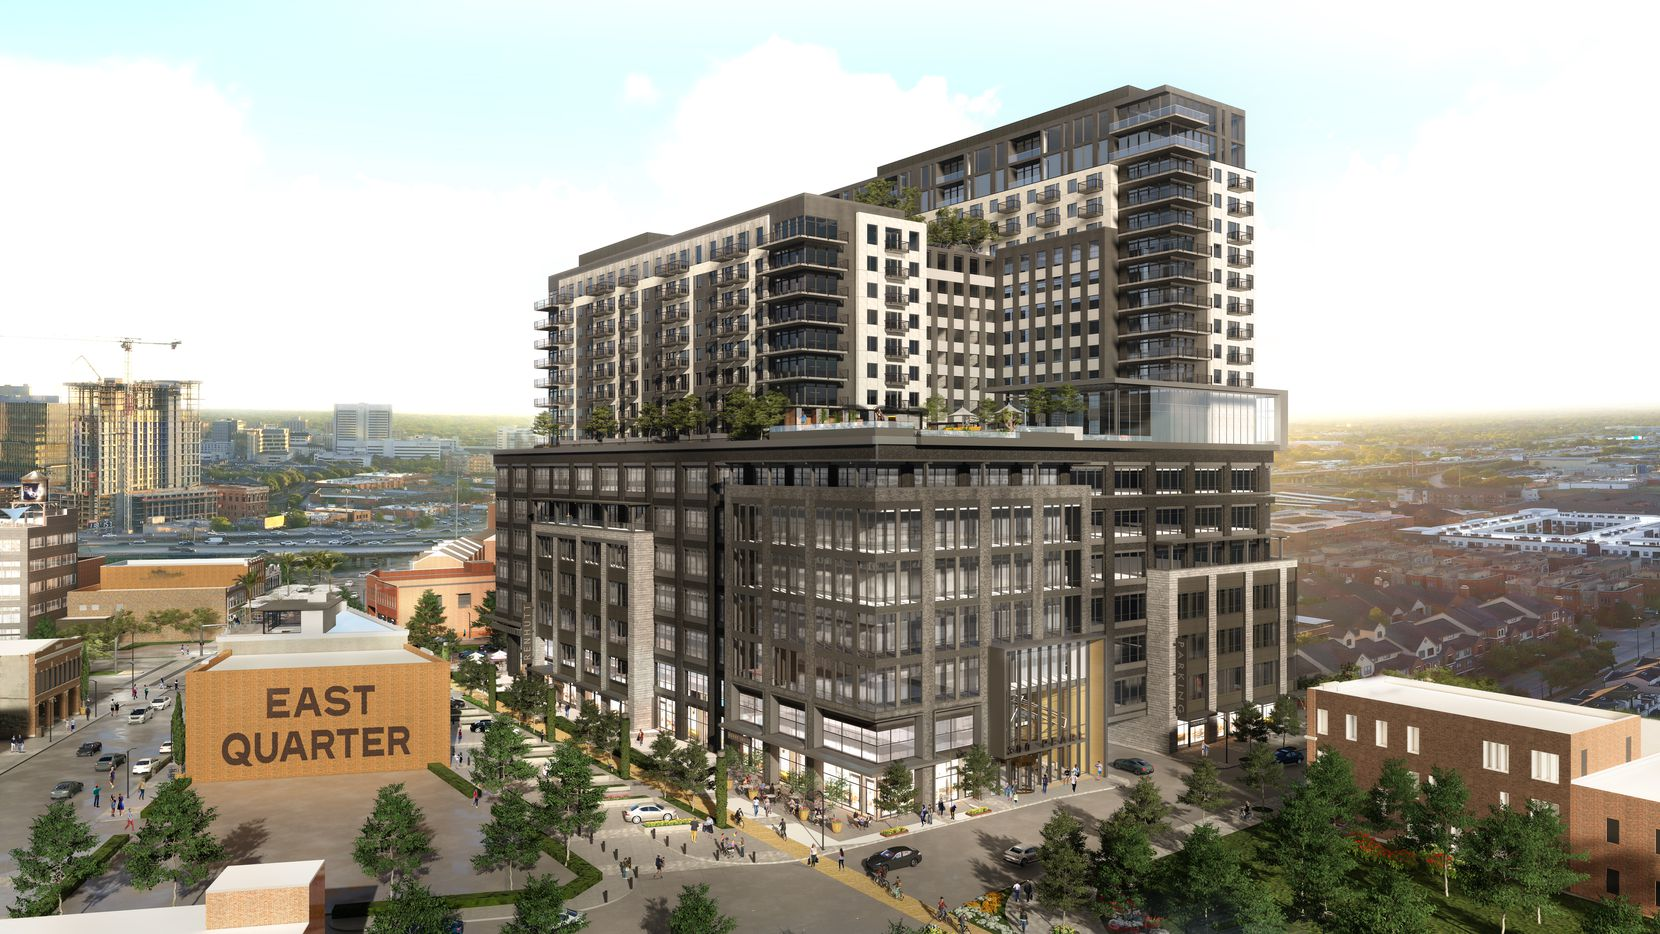 Todd Interests is building a new high-rise retail, office and apartment project in its East Quarter neighborhood.